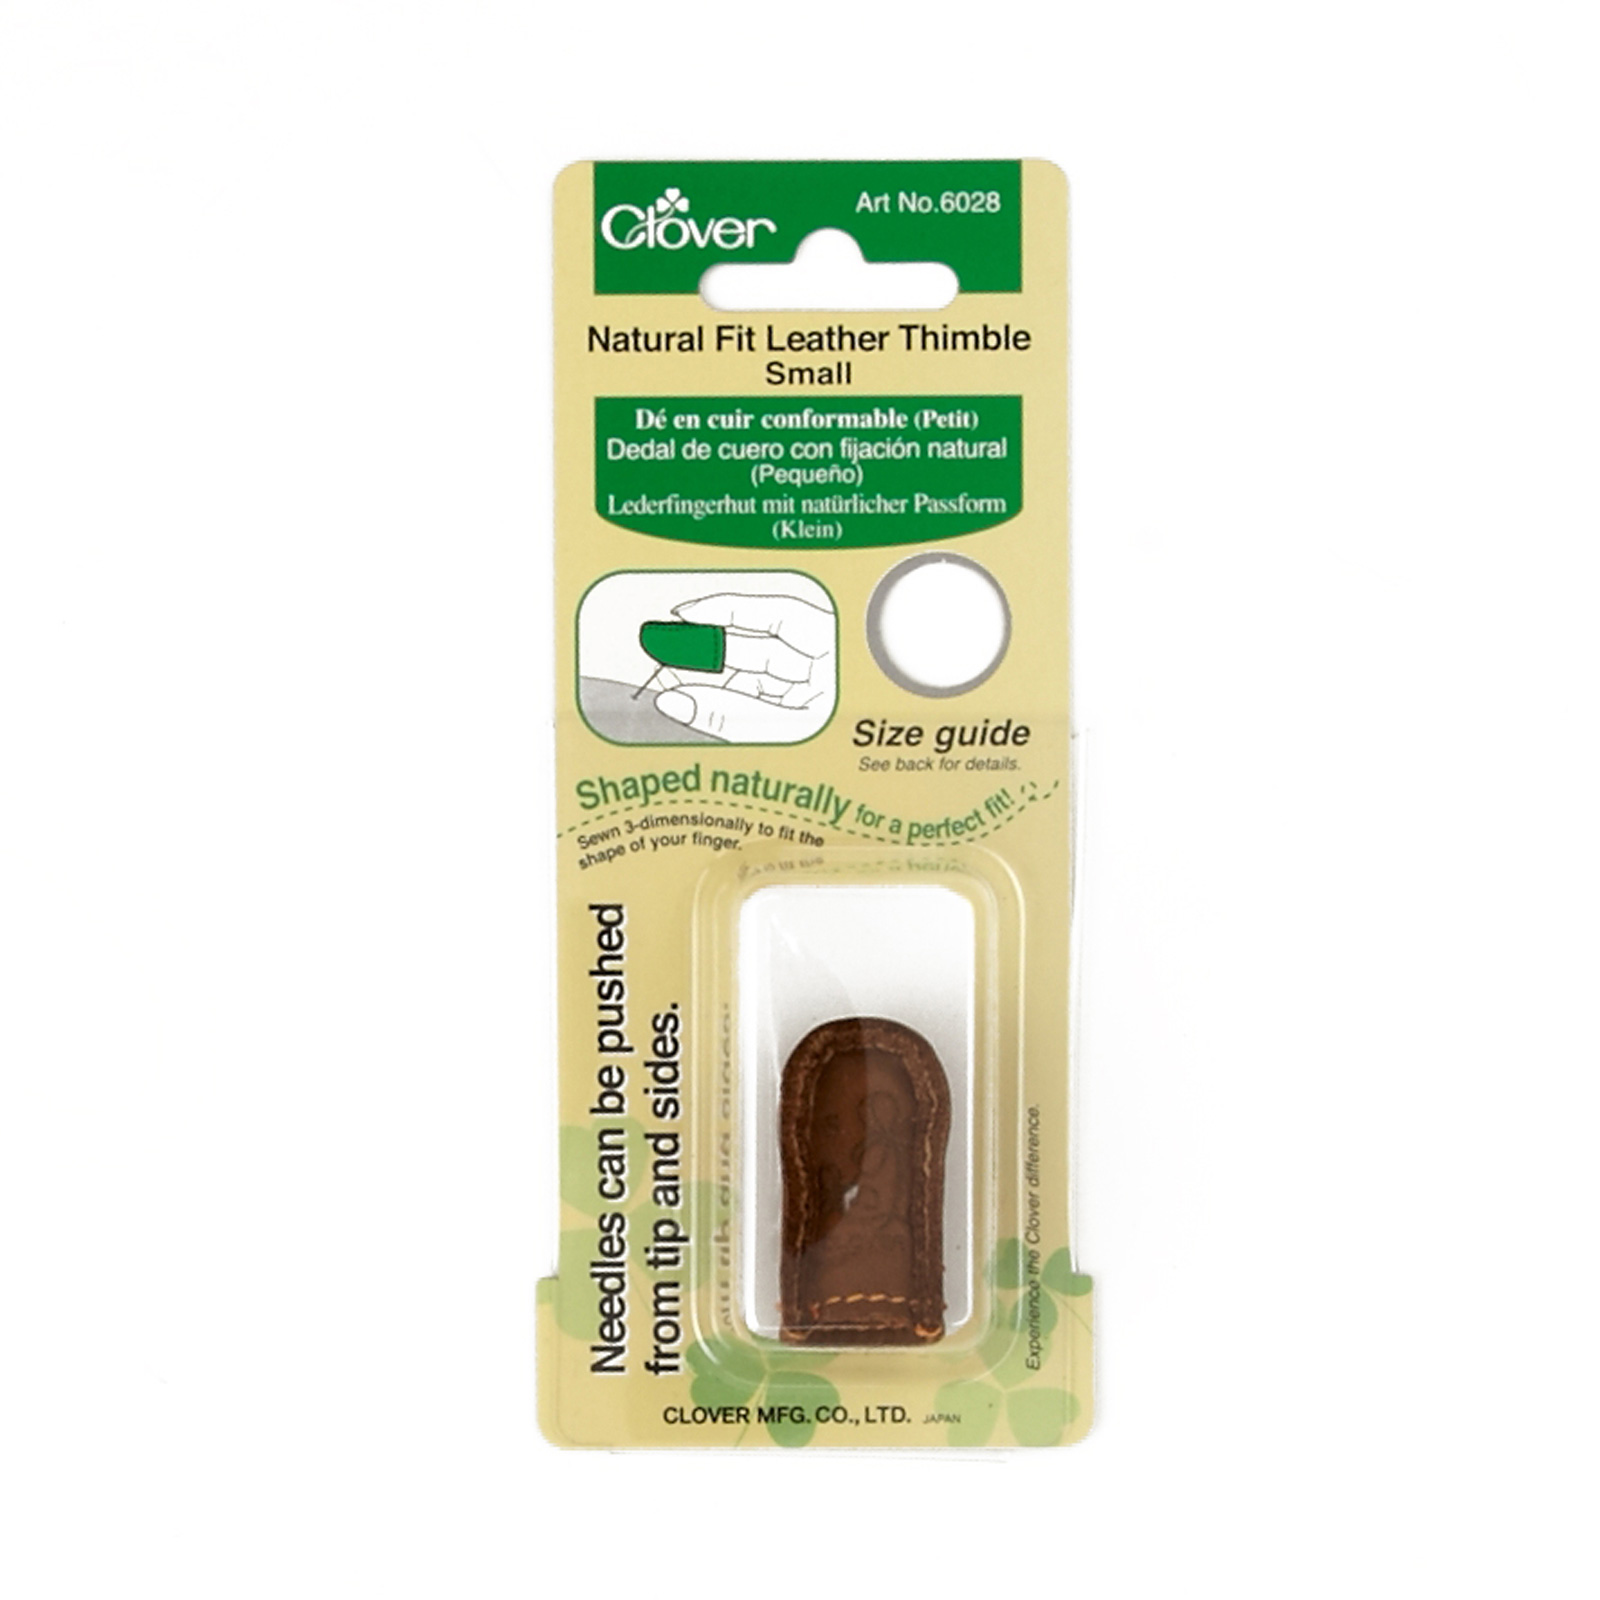 Clover Natural Fit Leather Thimble Small by Clover Needlecraft in USA